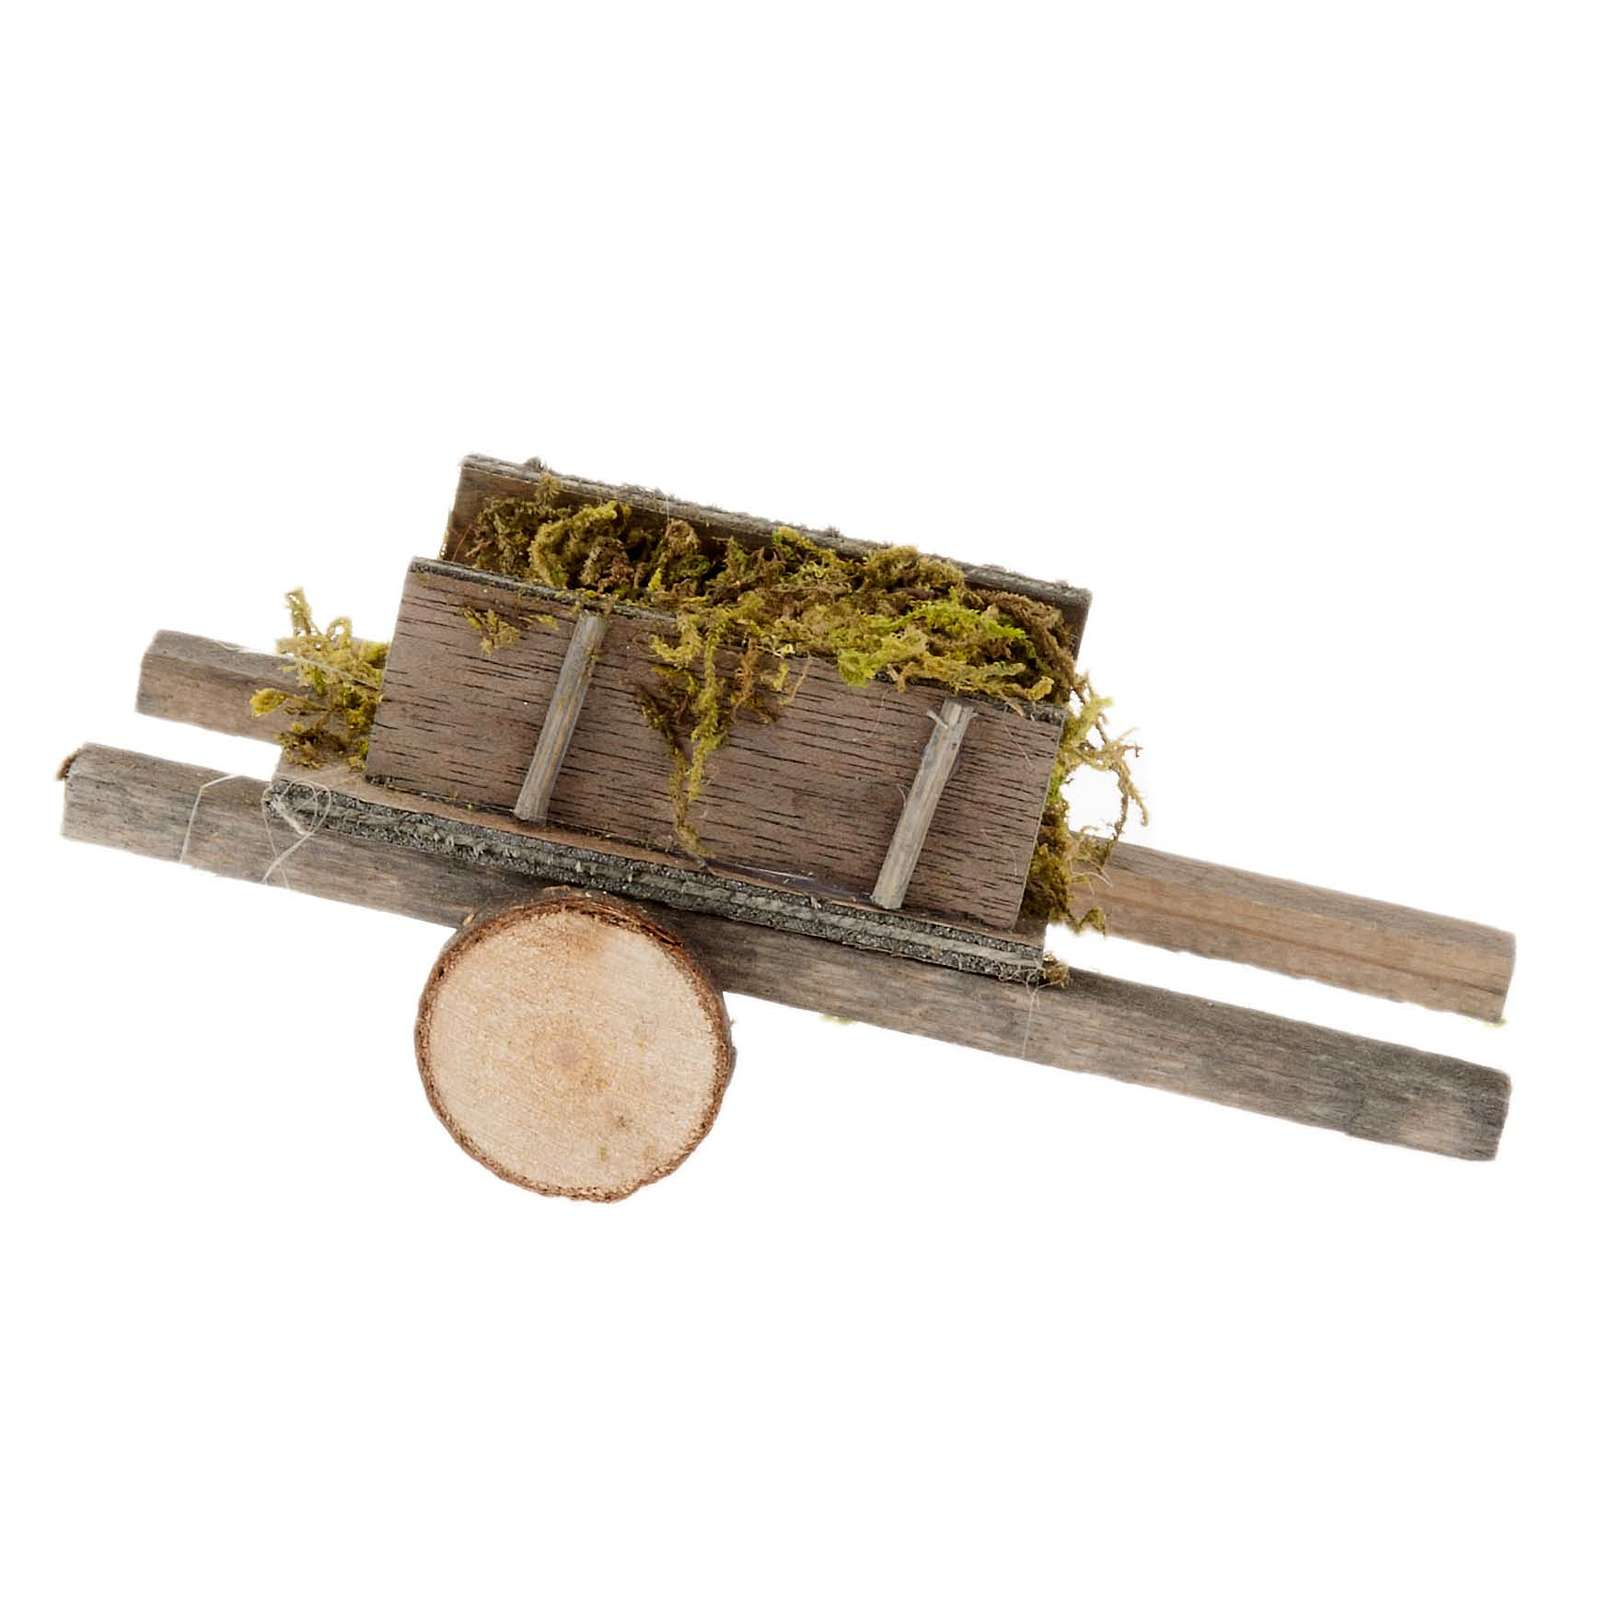 Nativity scene accessory, cart with moss 4